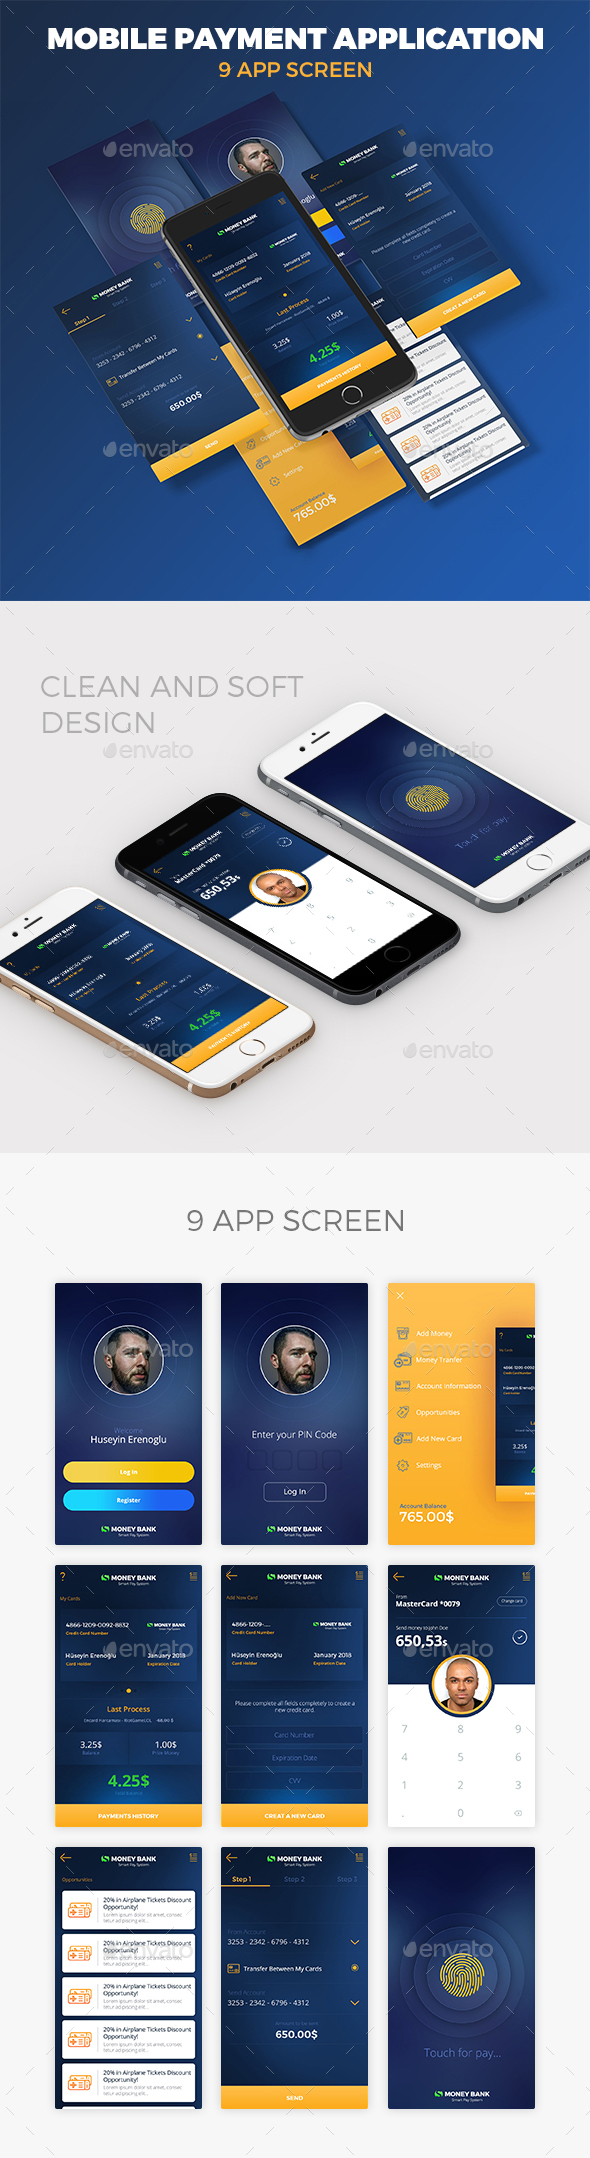 Envelope Mail App Startup UI Kit (User Interfaces)